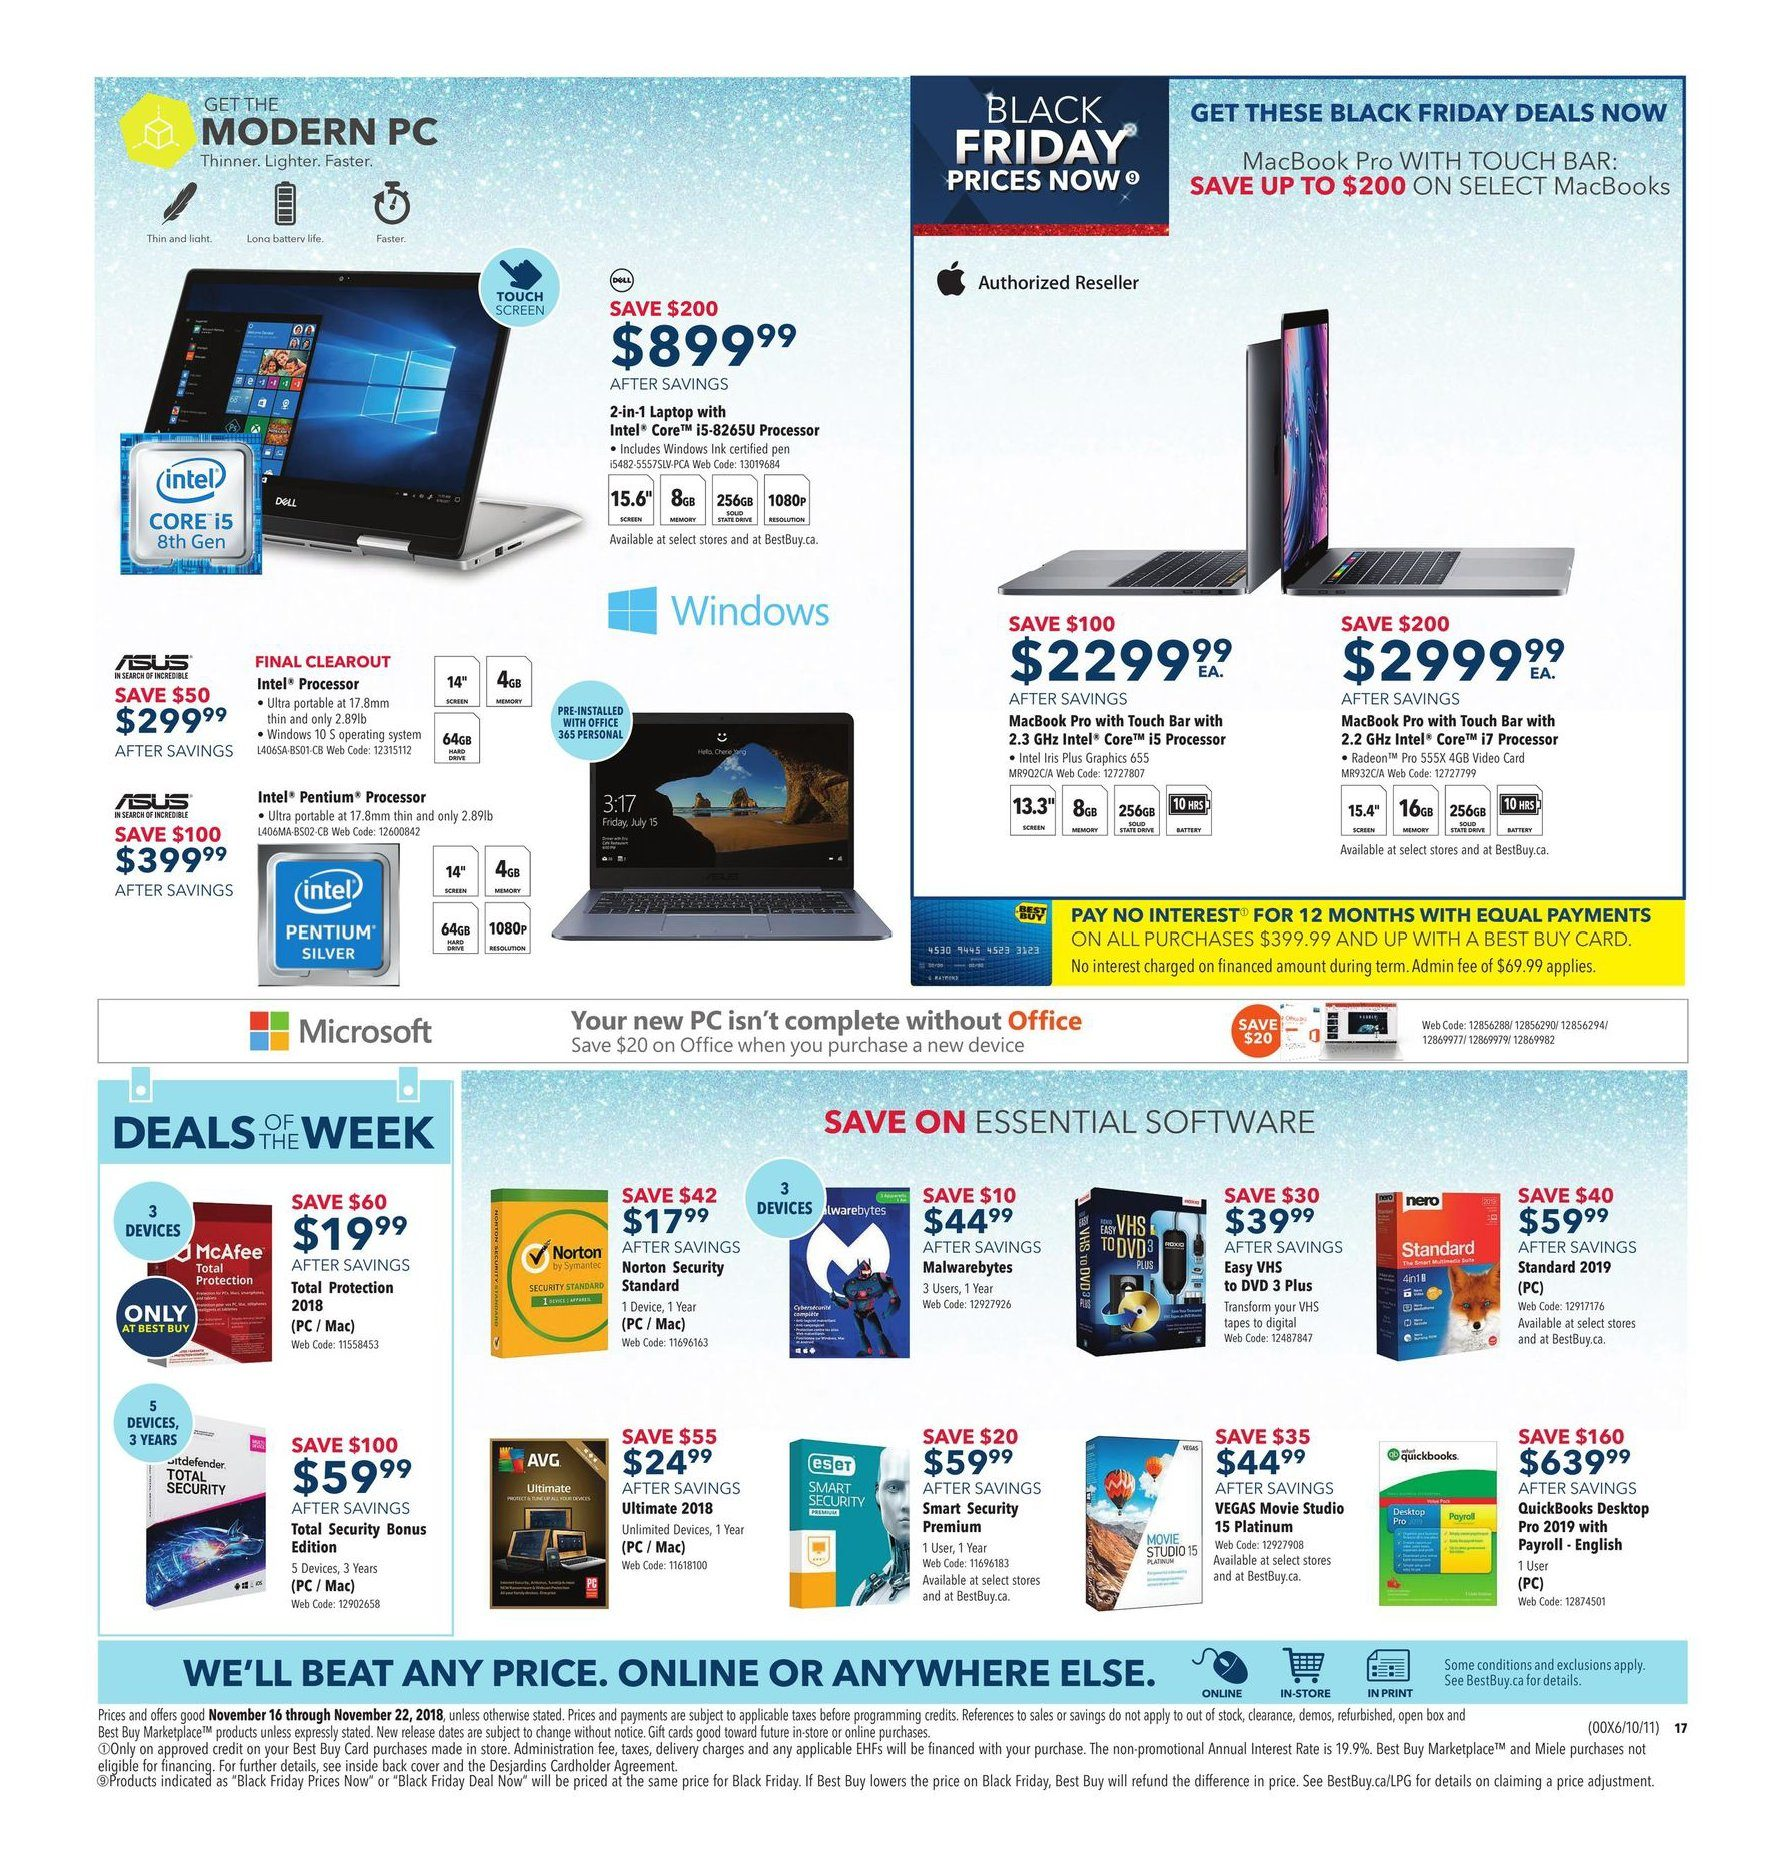 Best Buy Weekly Flyer - Weekly - Black Friday Prices Now